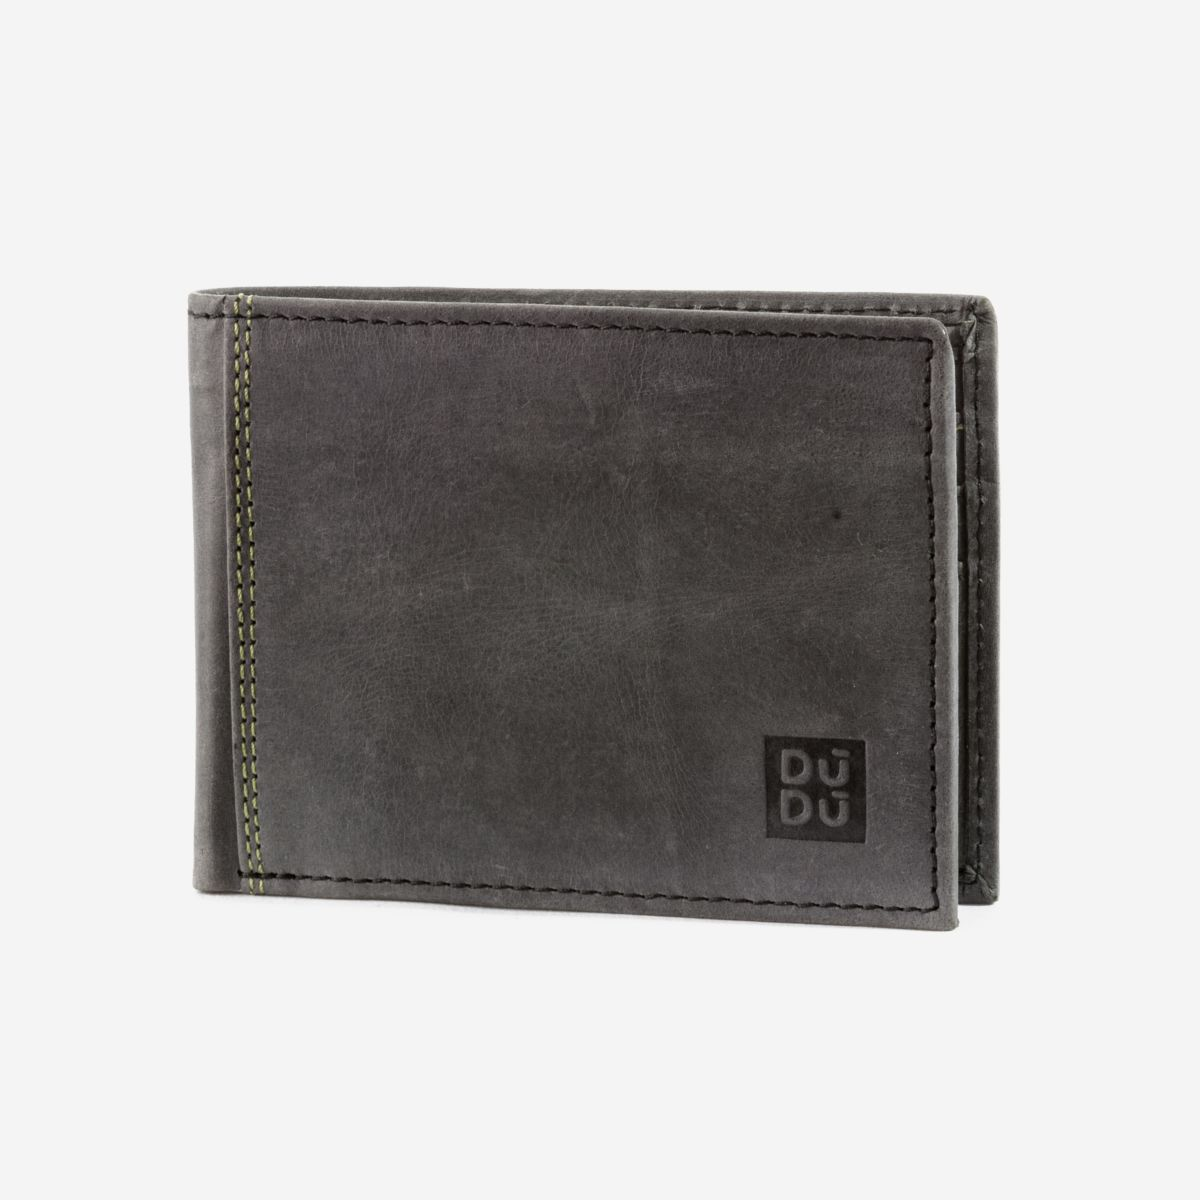 DuDu Vintage Slim Leather Wallet - Black